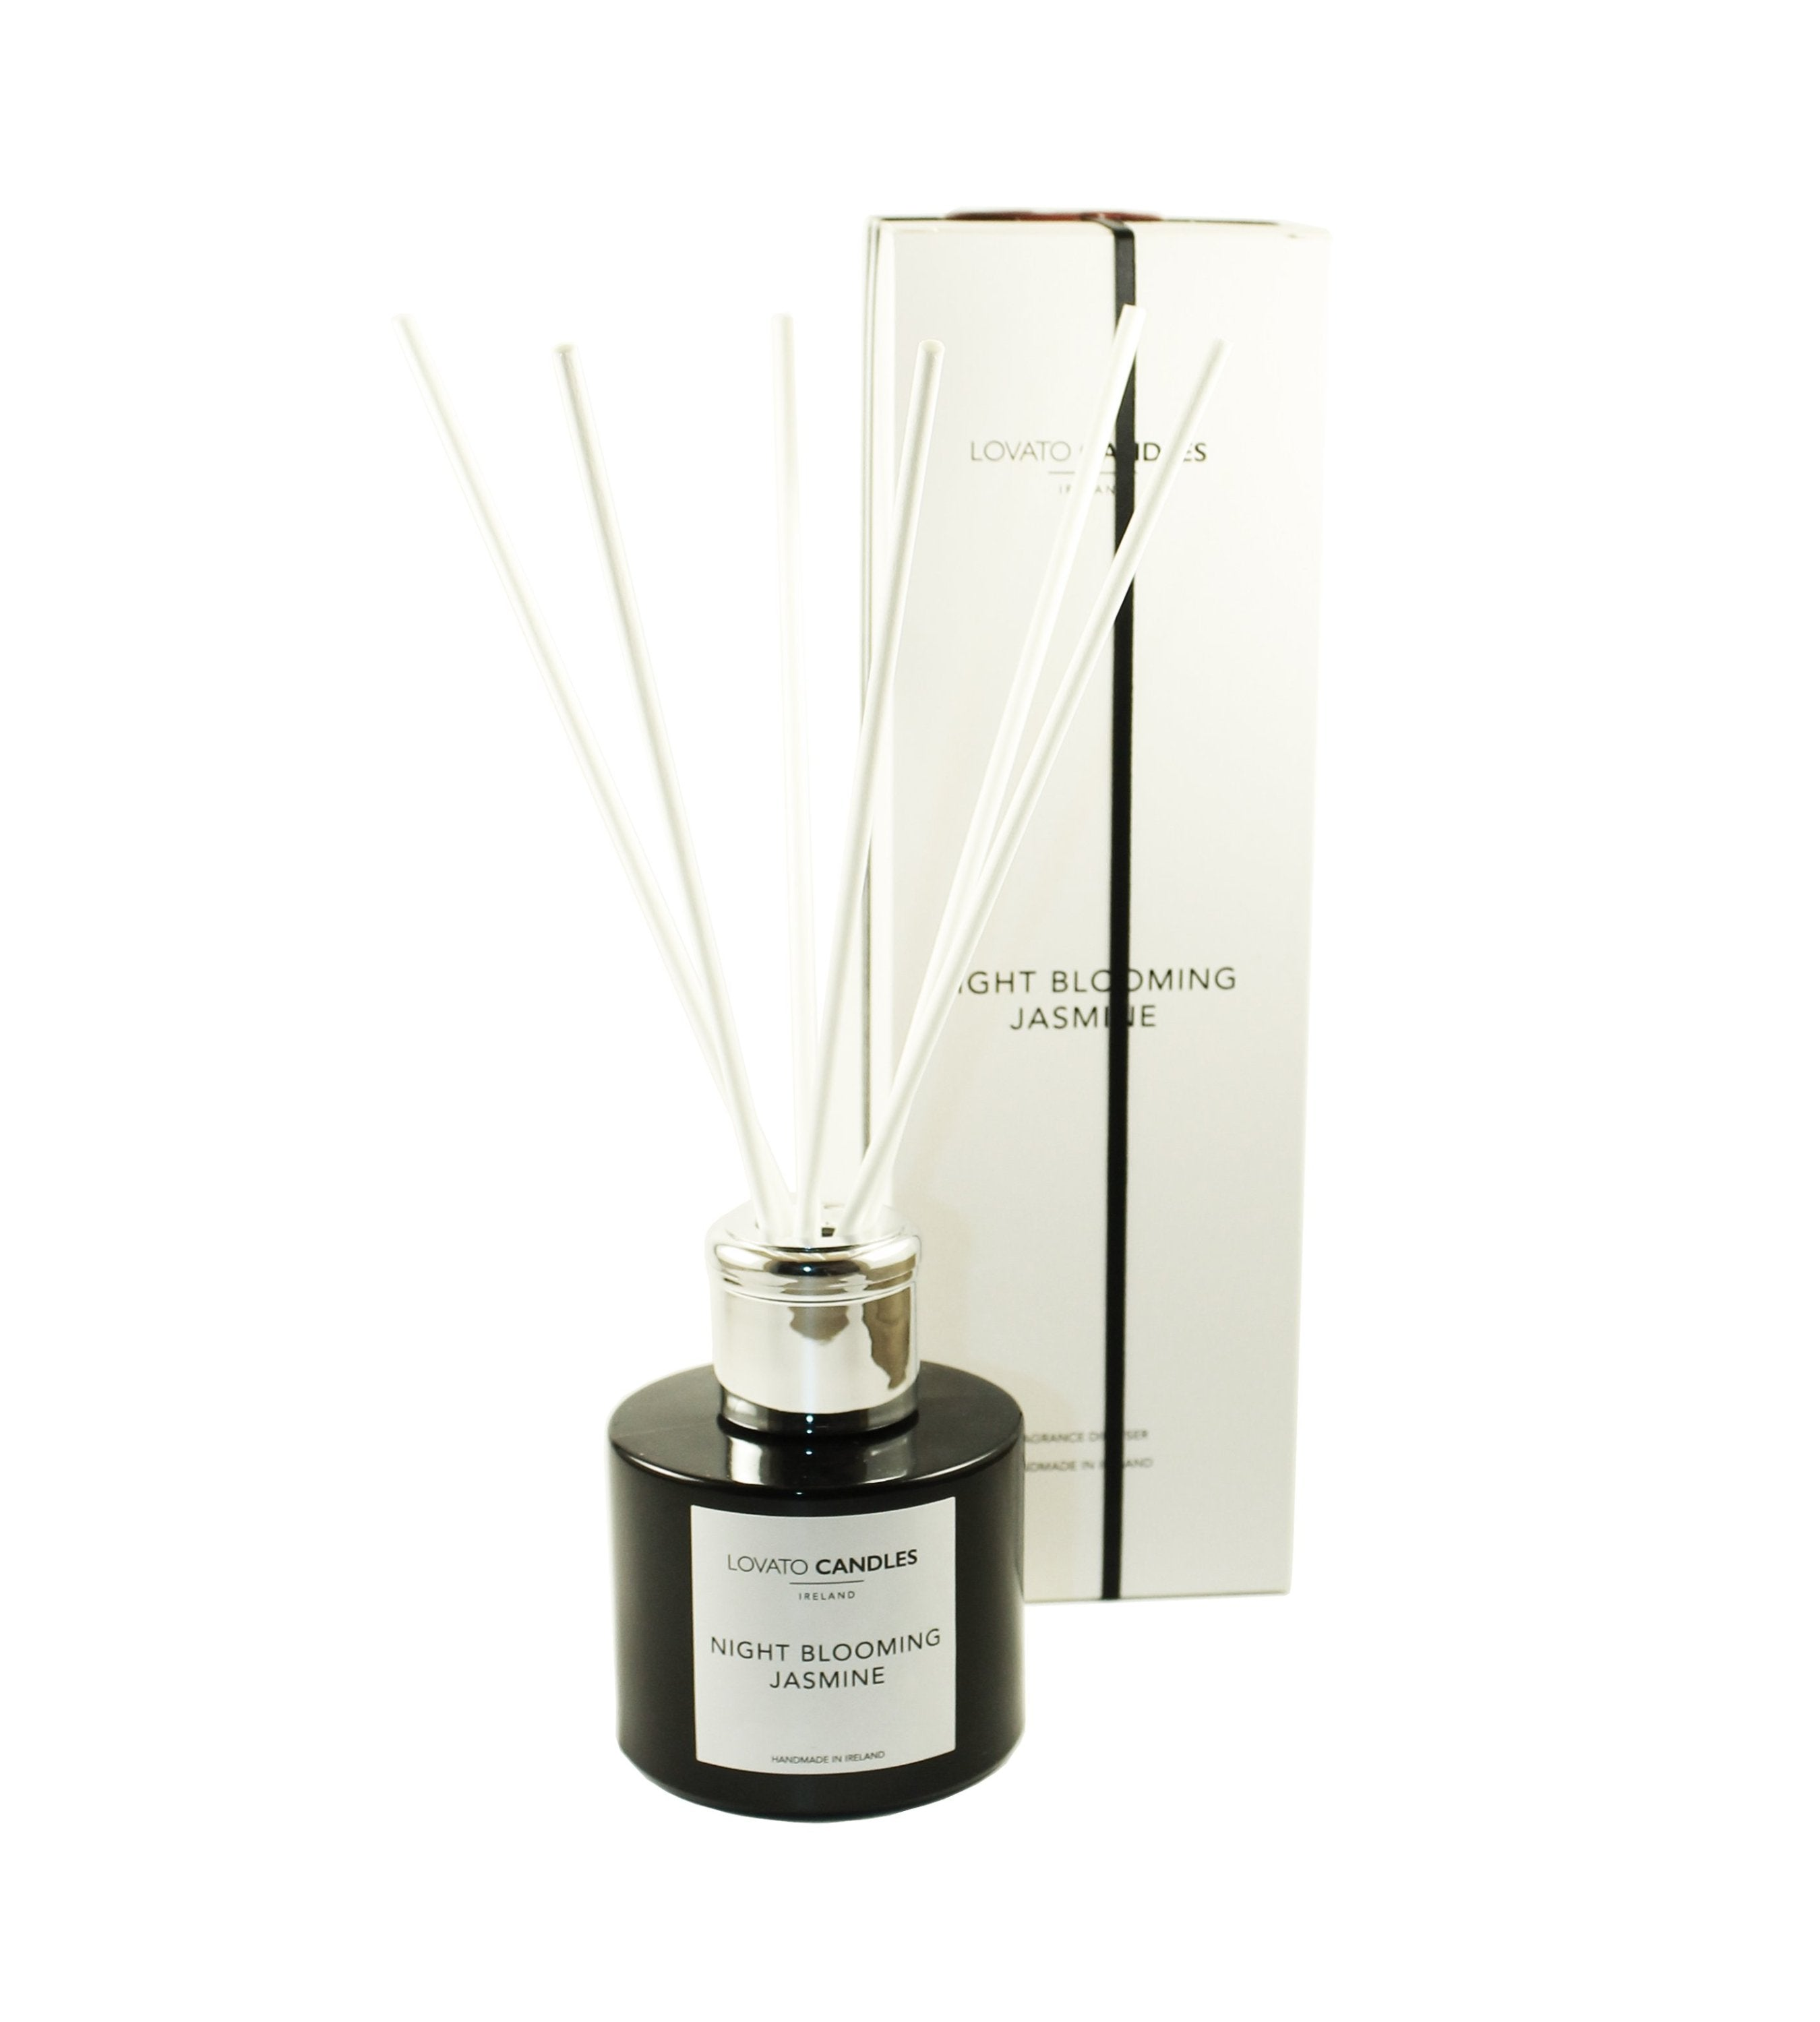 Black Diffuser - Night Blooming Jasmine - Lovato Candles